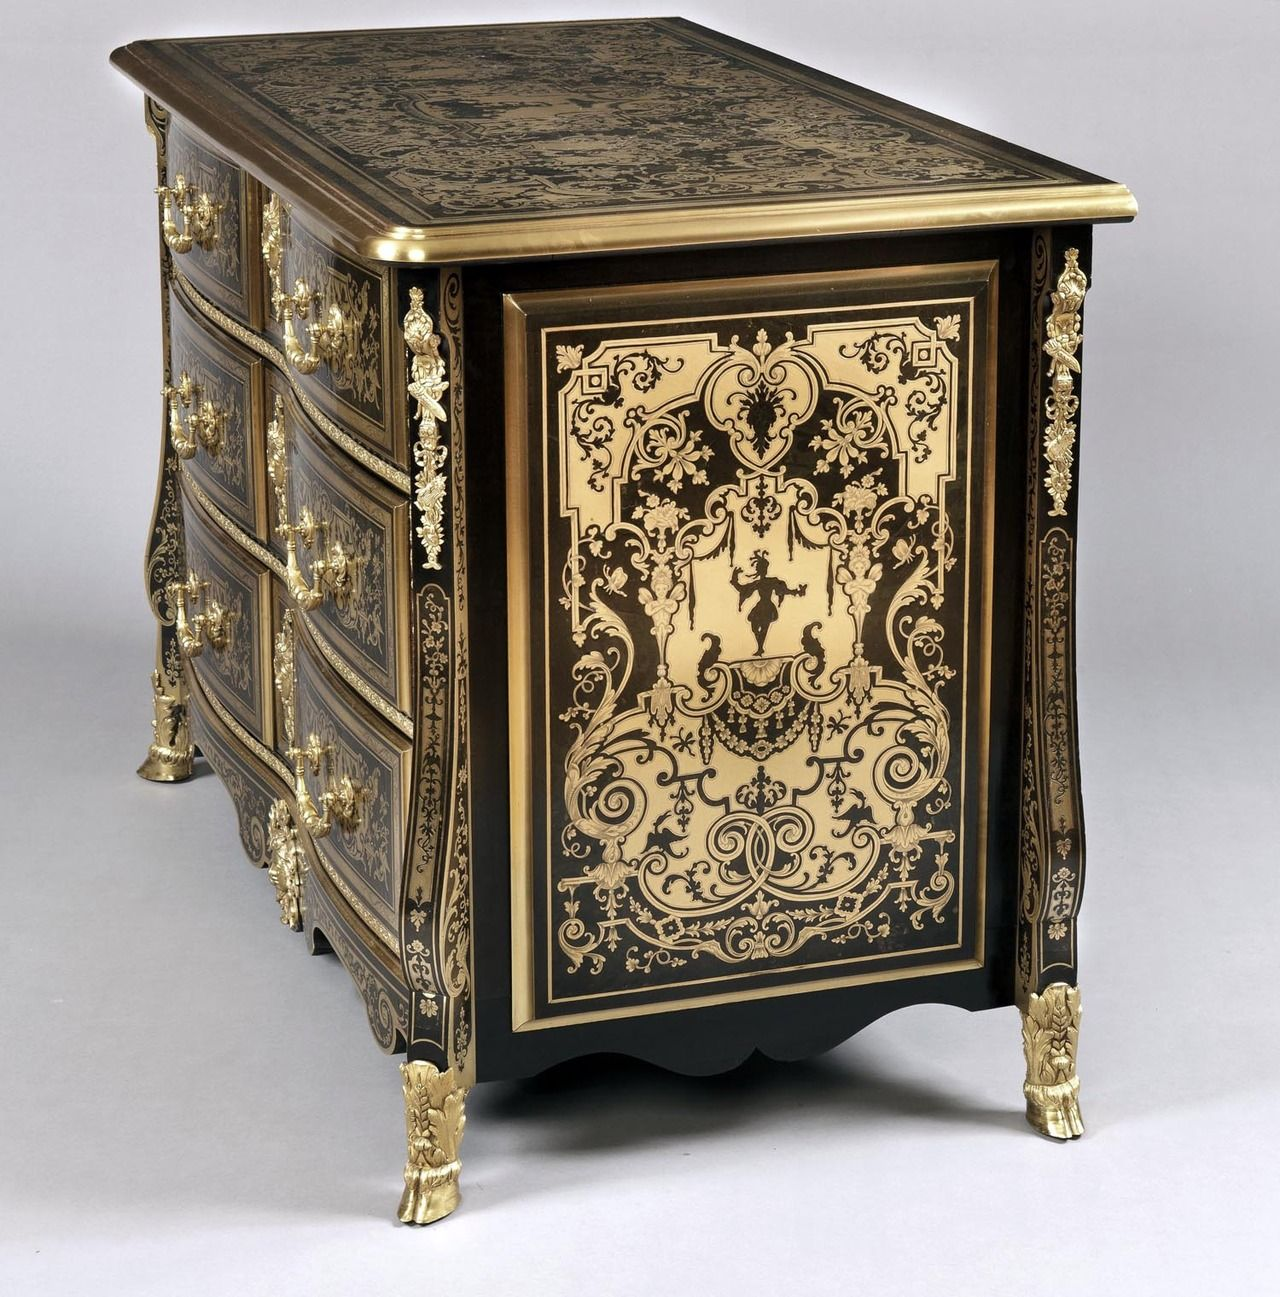 Salon Louis Xiv Meuble André Charles Boulle Louis Xiv Commode Homesandlifestylemedia